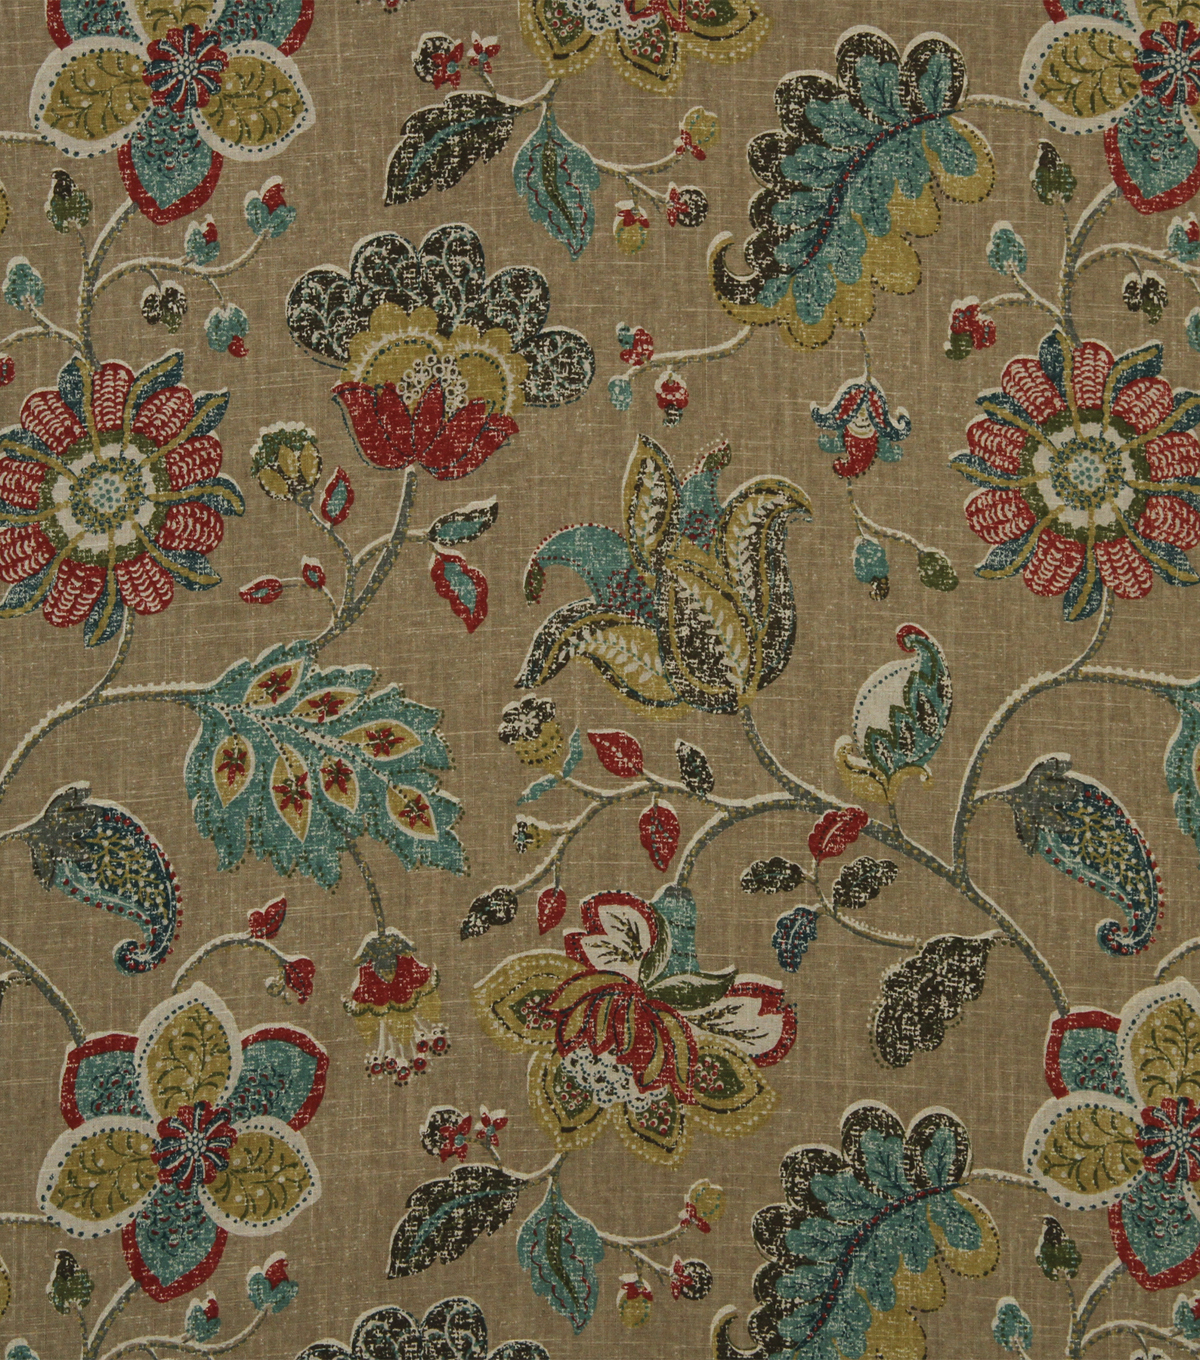 Home Decor 8\u0022x8\u0022 Fabric Swatch-Robert Allen Spring Mix Pomegranate